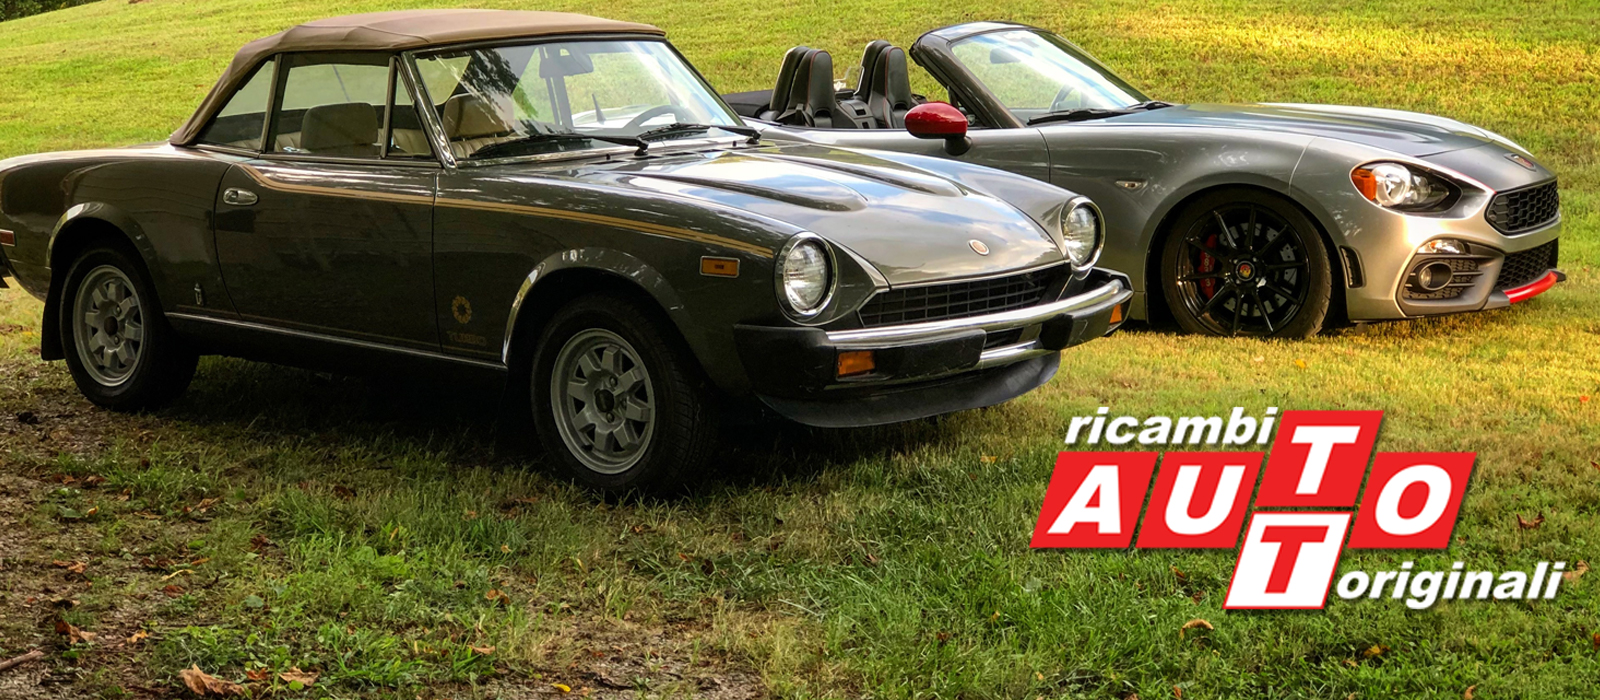 Huge inventory for Classic and New FIAT 124 Spiders